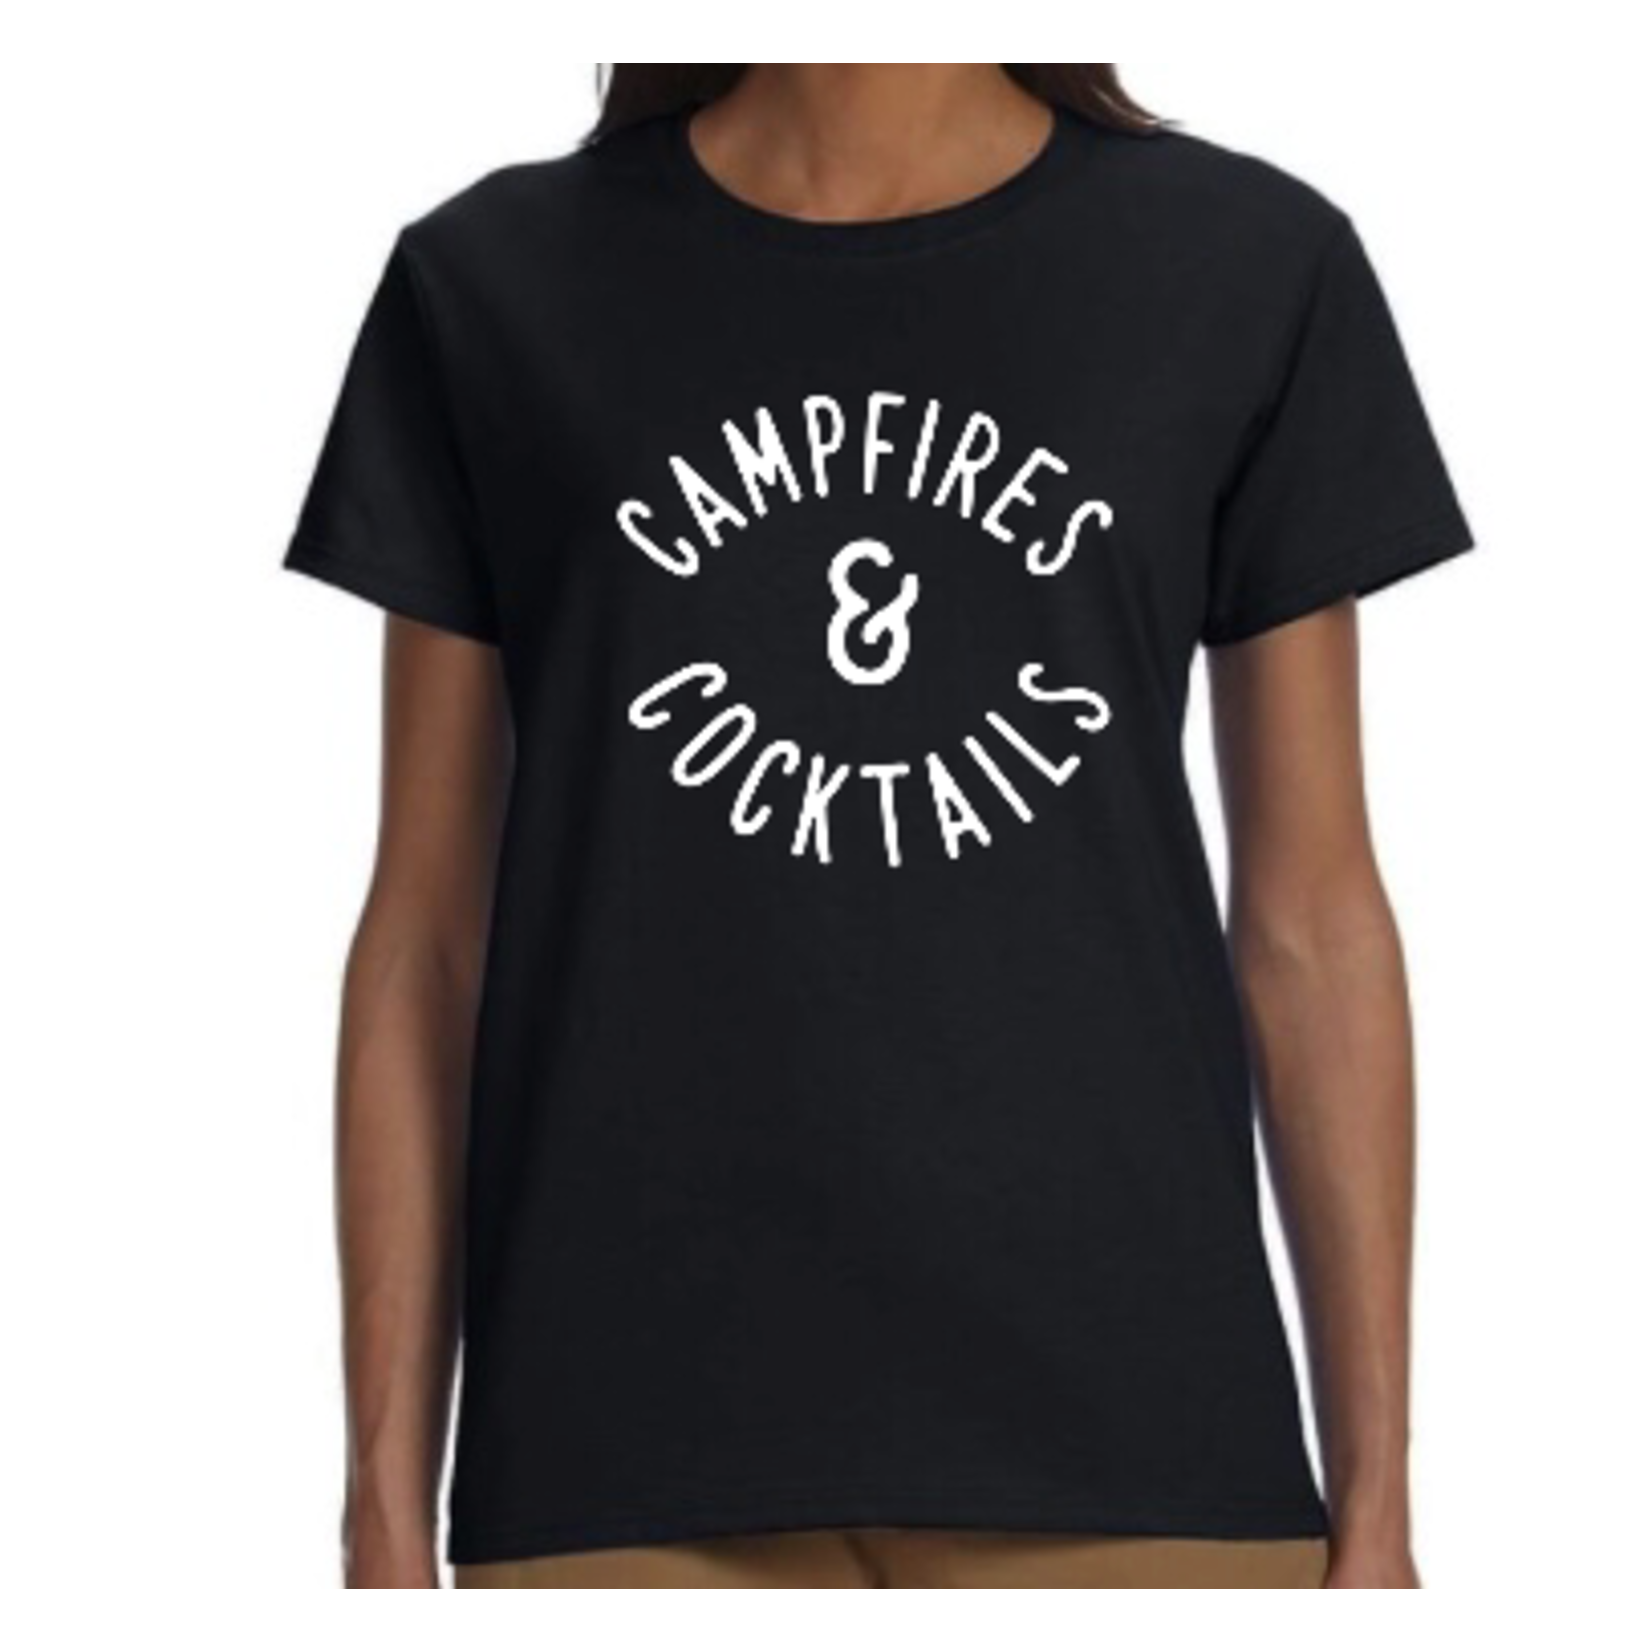 favourite things apparel Women's T-shirt: Campfires & Cocktails